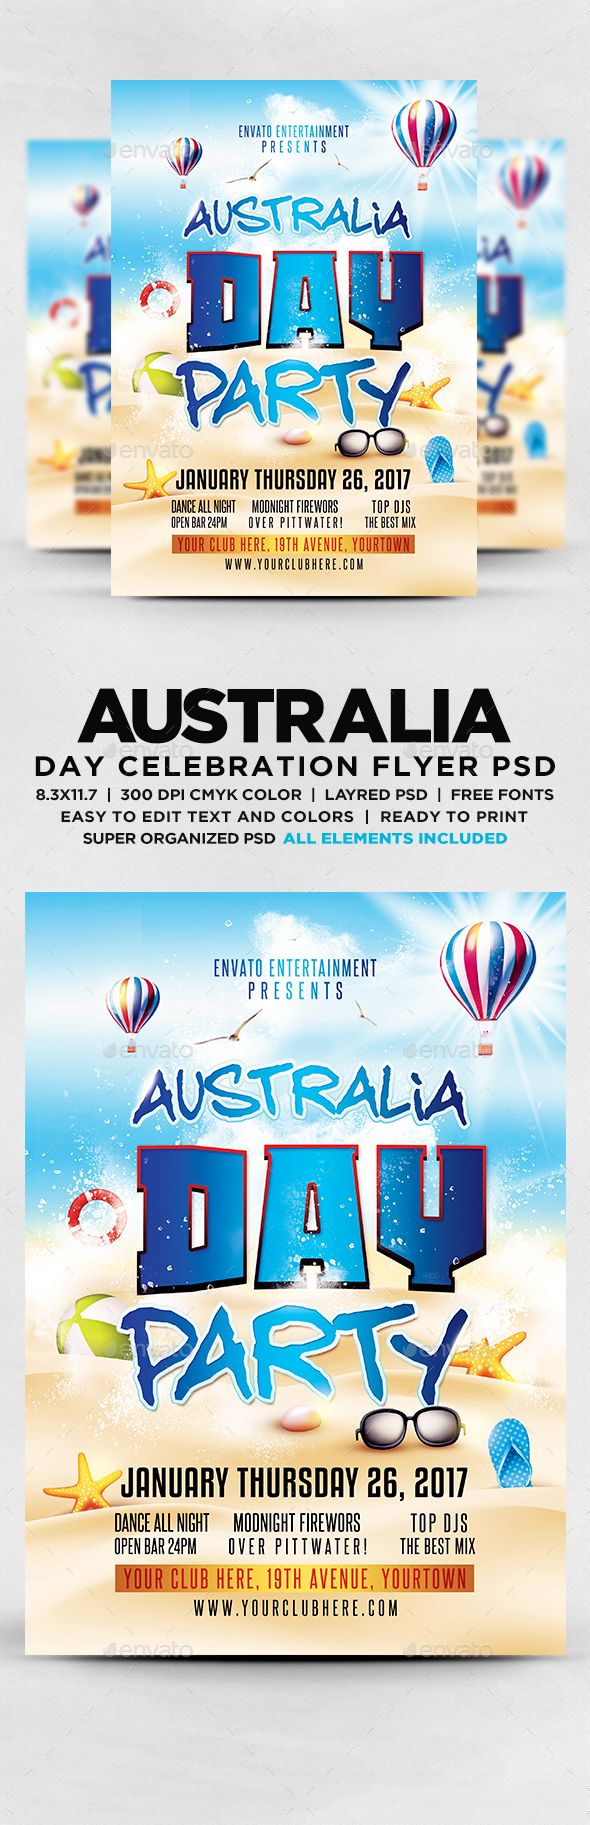 88 best Flyer & Poster images on Pinterest | Infographic, Editorial ...